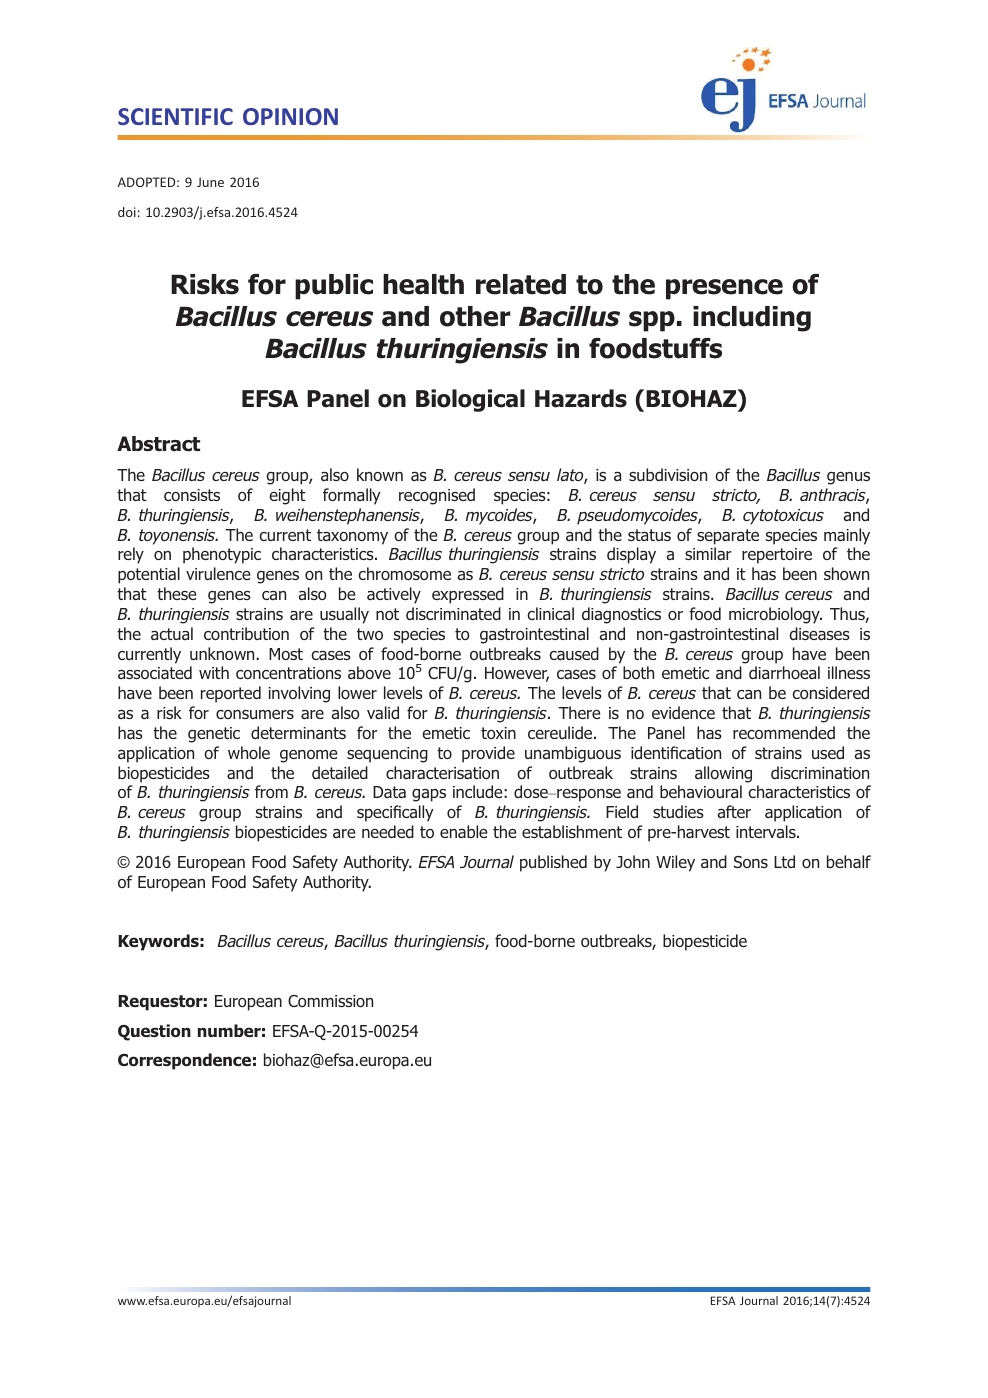 Risks for public health related to the presence ofBacillus cereusand